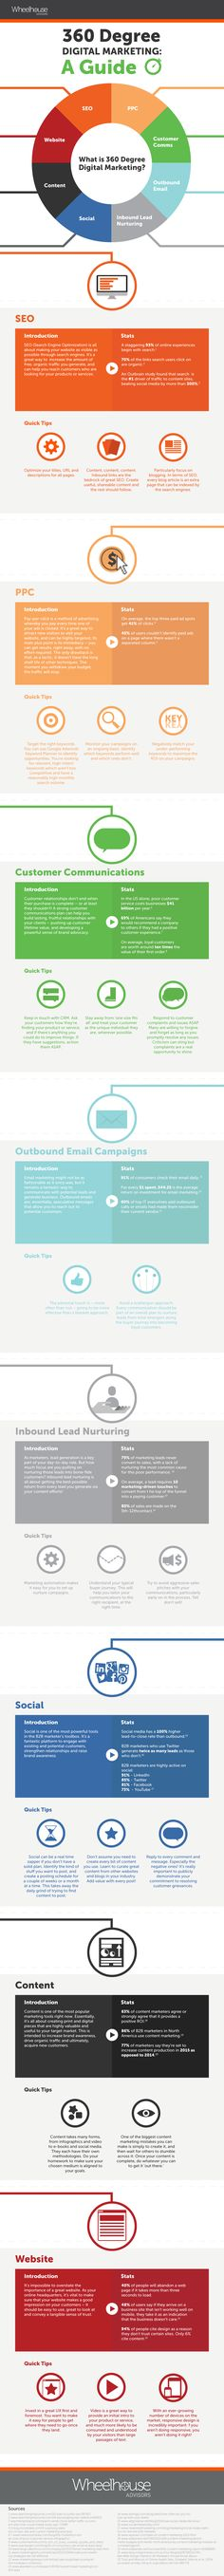 Developing A 360-Degree Digital Marketing Strategy - #infographic